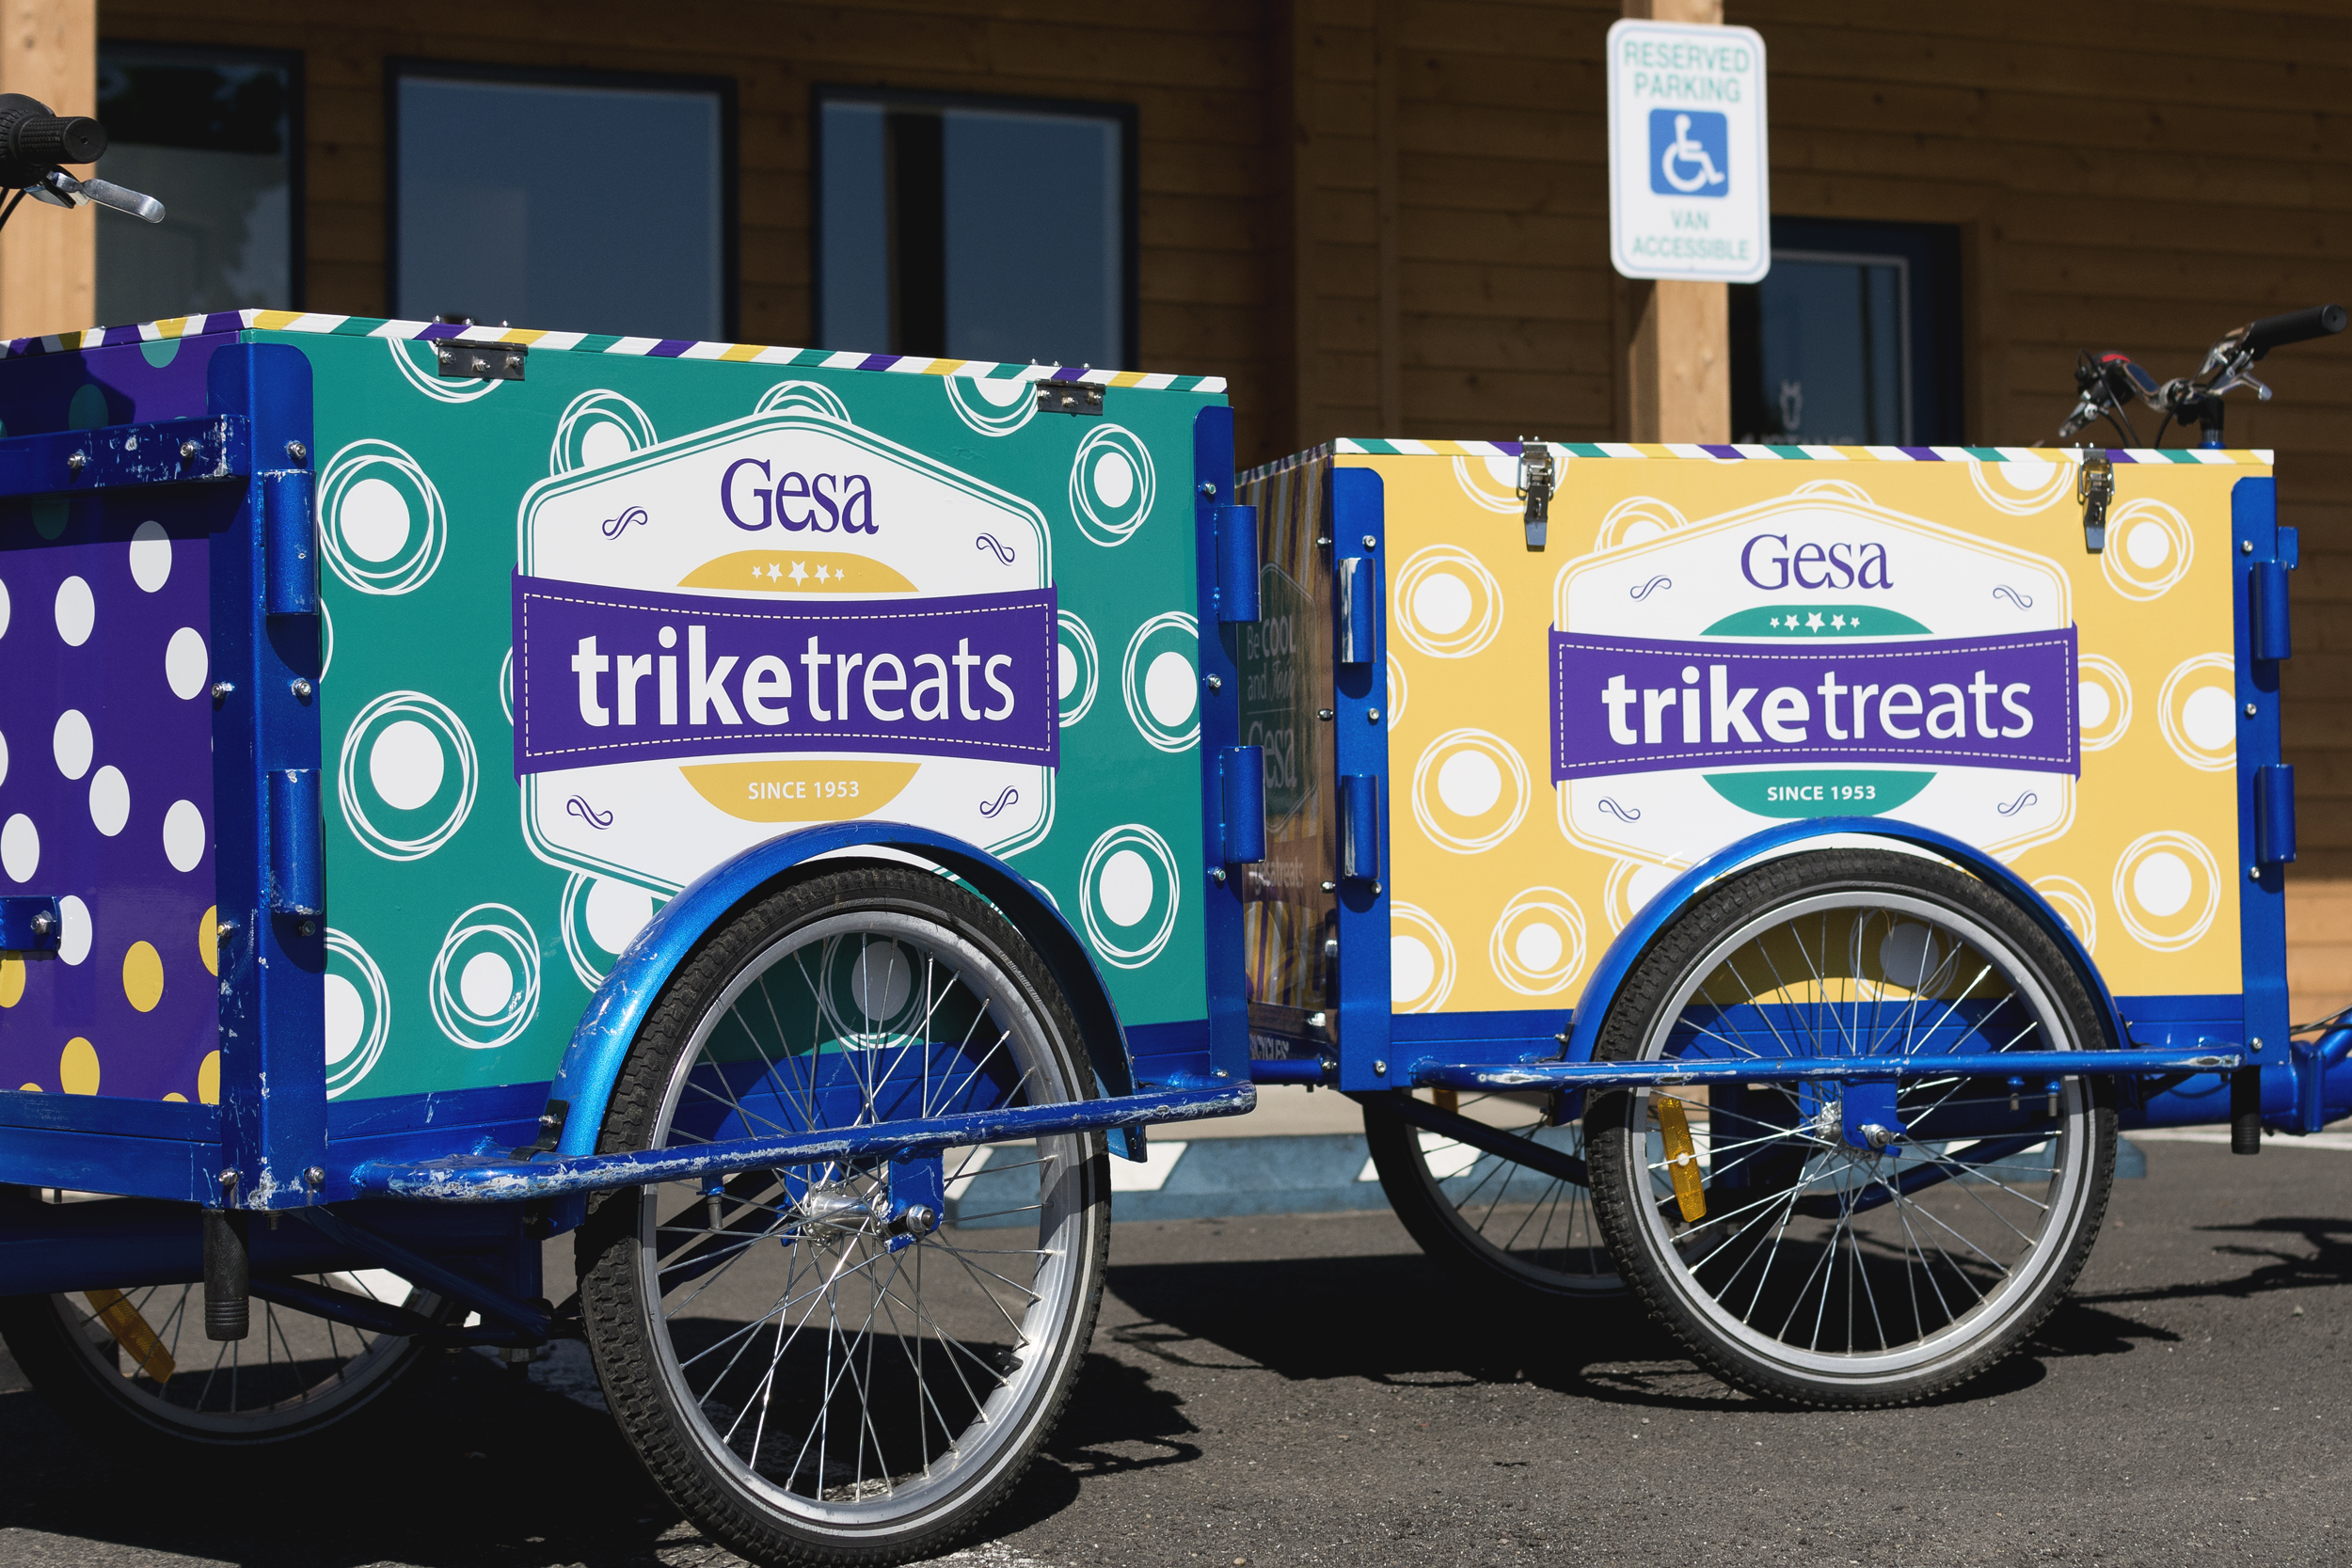 Gesa Trike Treats